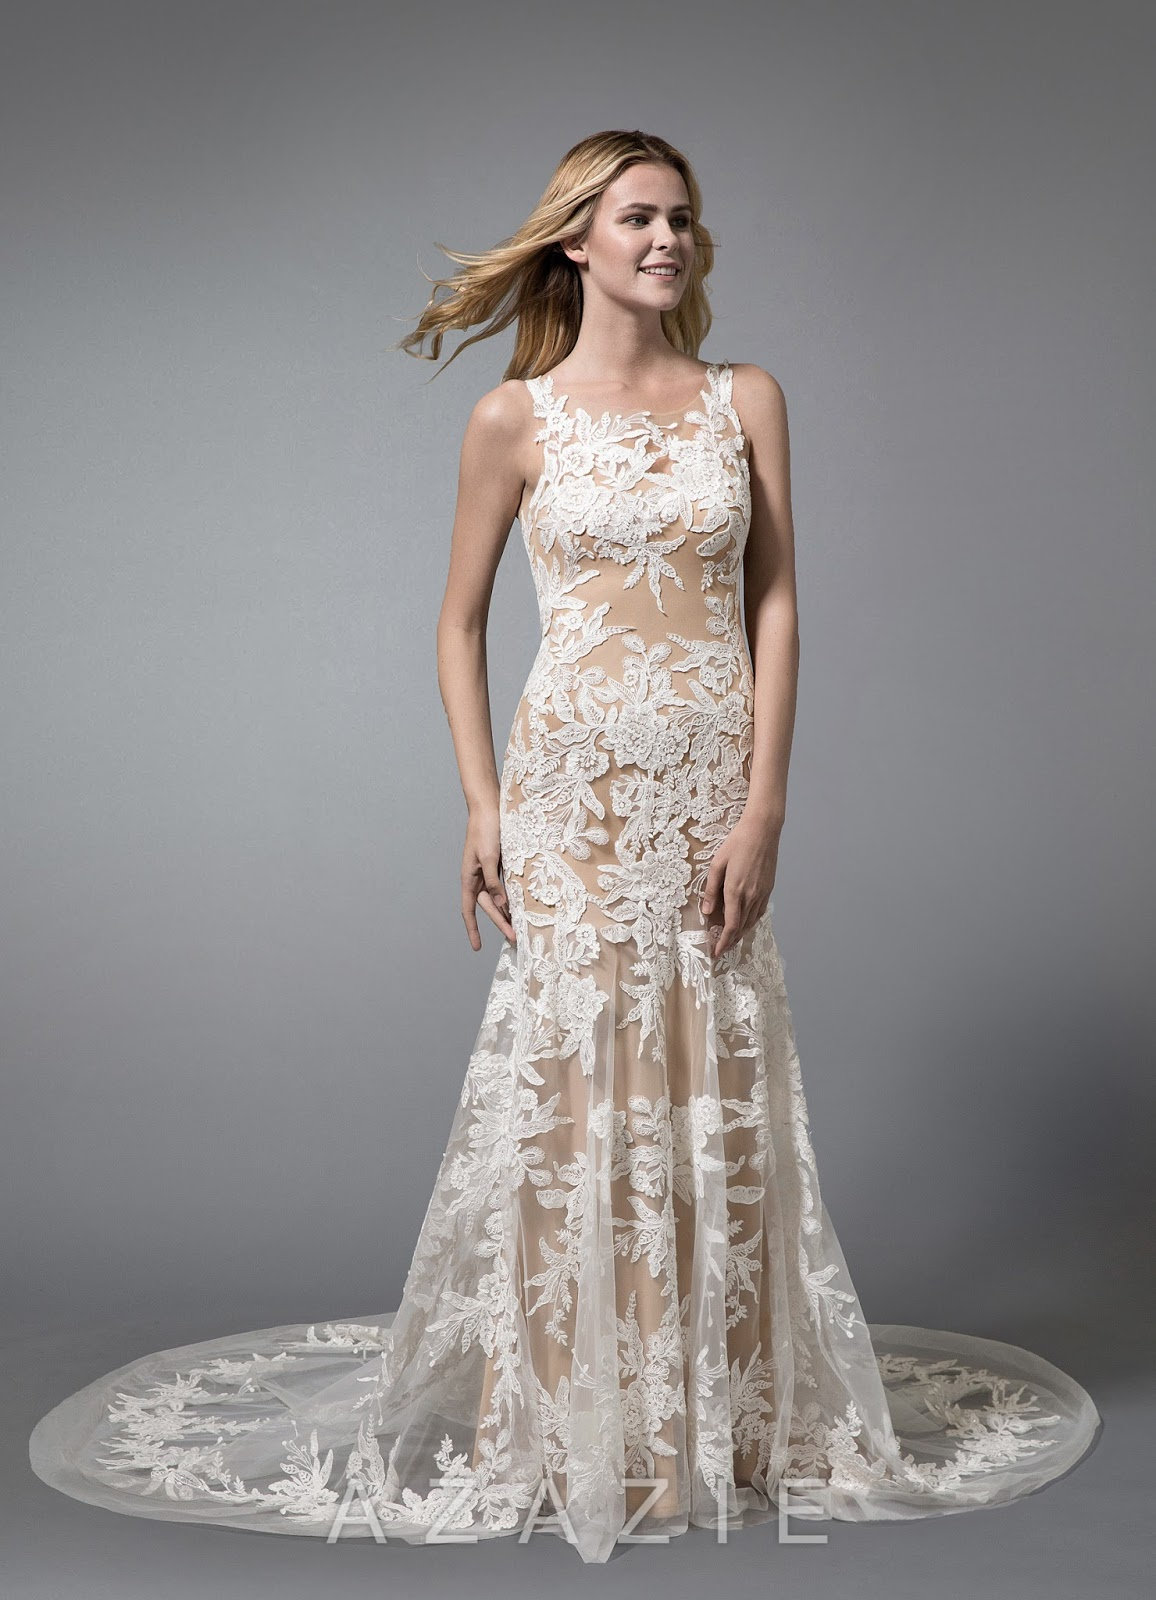 20 Beautiful New Wedding Dresses At Azazie For Less Than $450